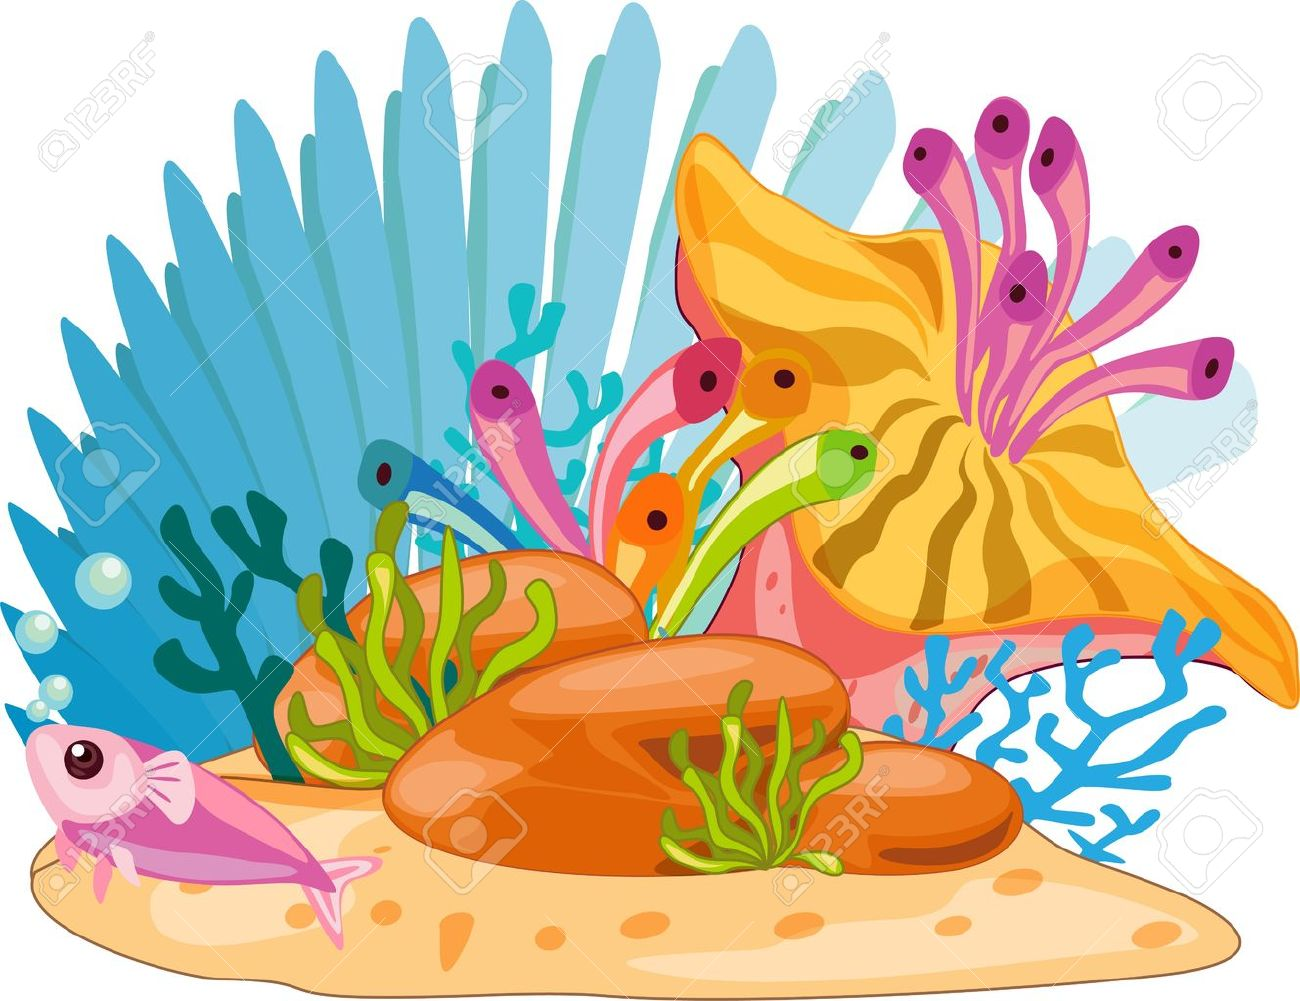 Sea plants clipart 6 » Clipart Station.